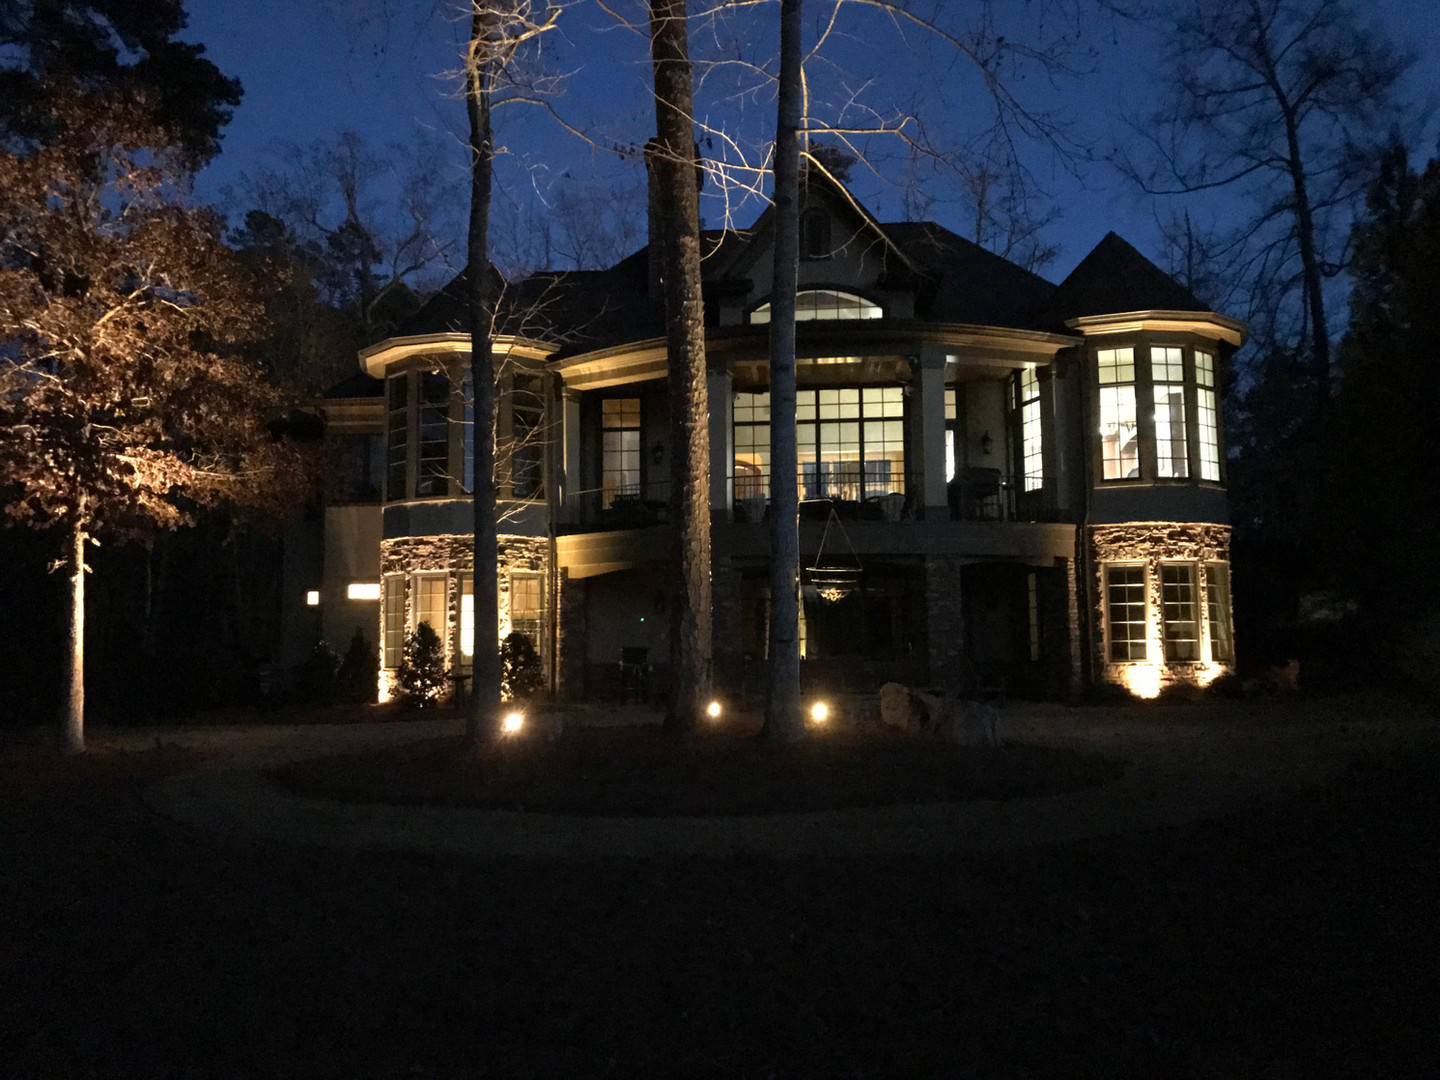 Architectural Lighting and Tree Up Light